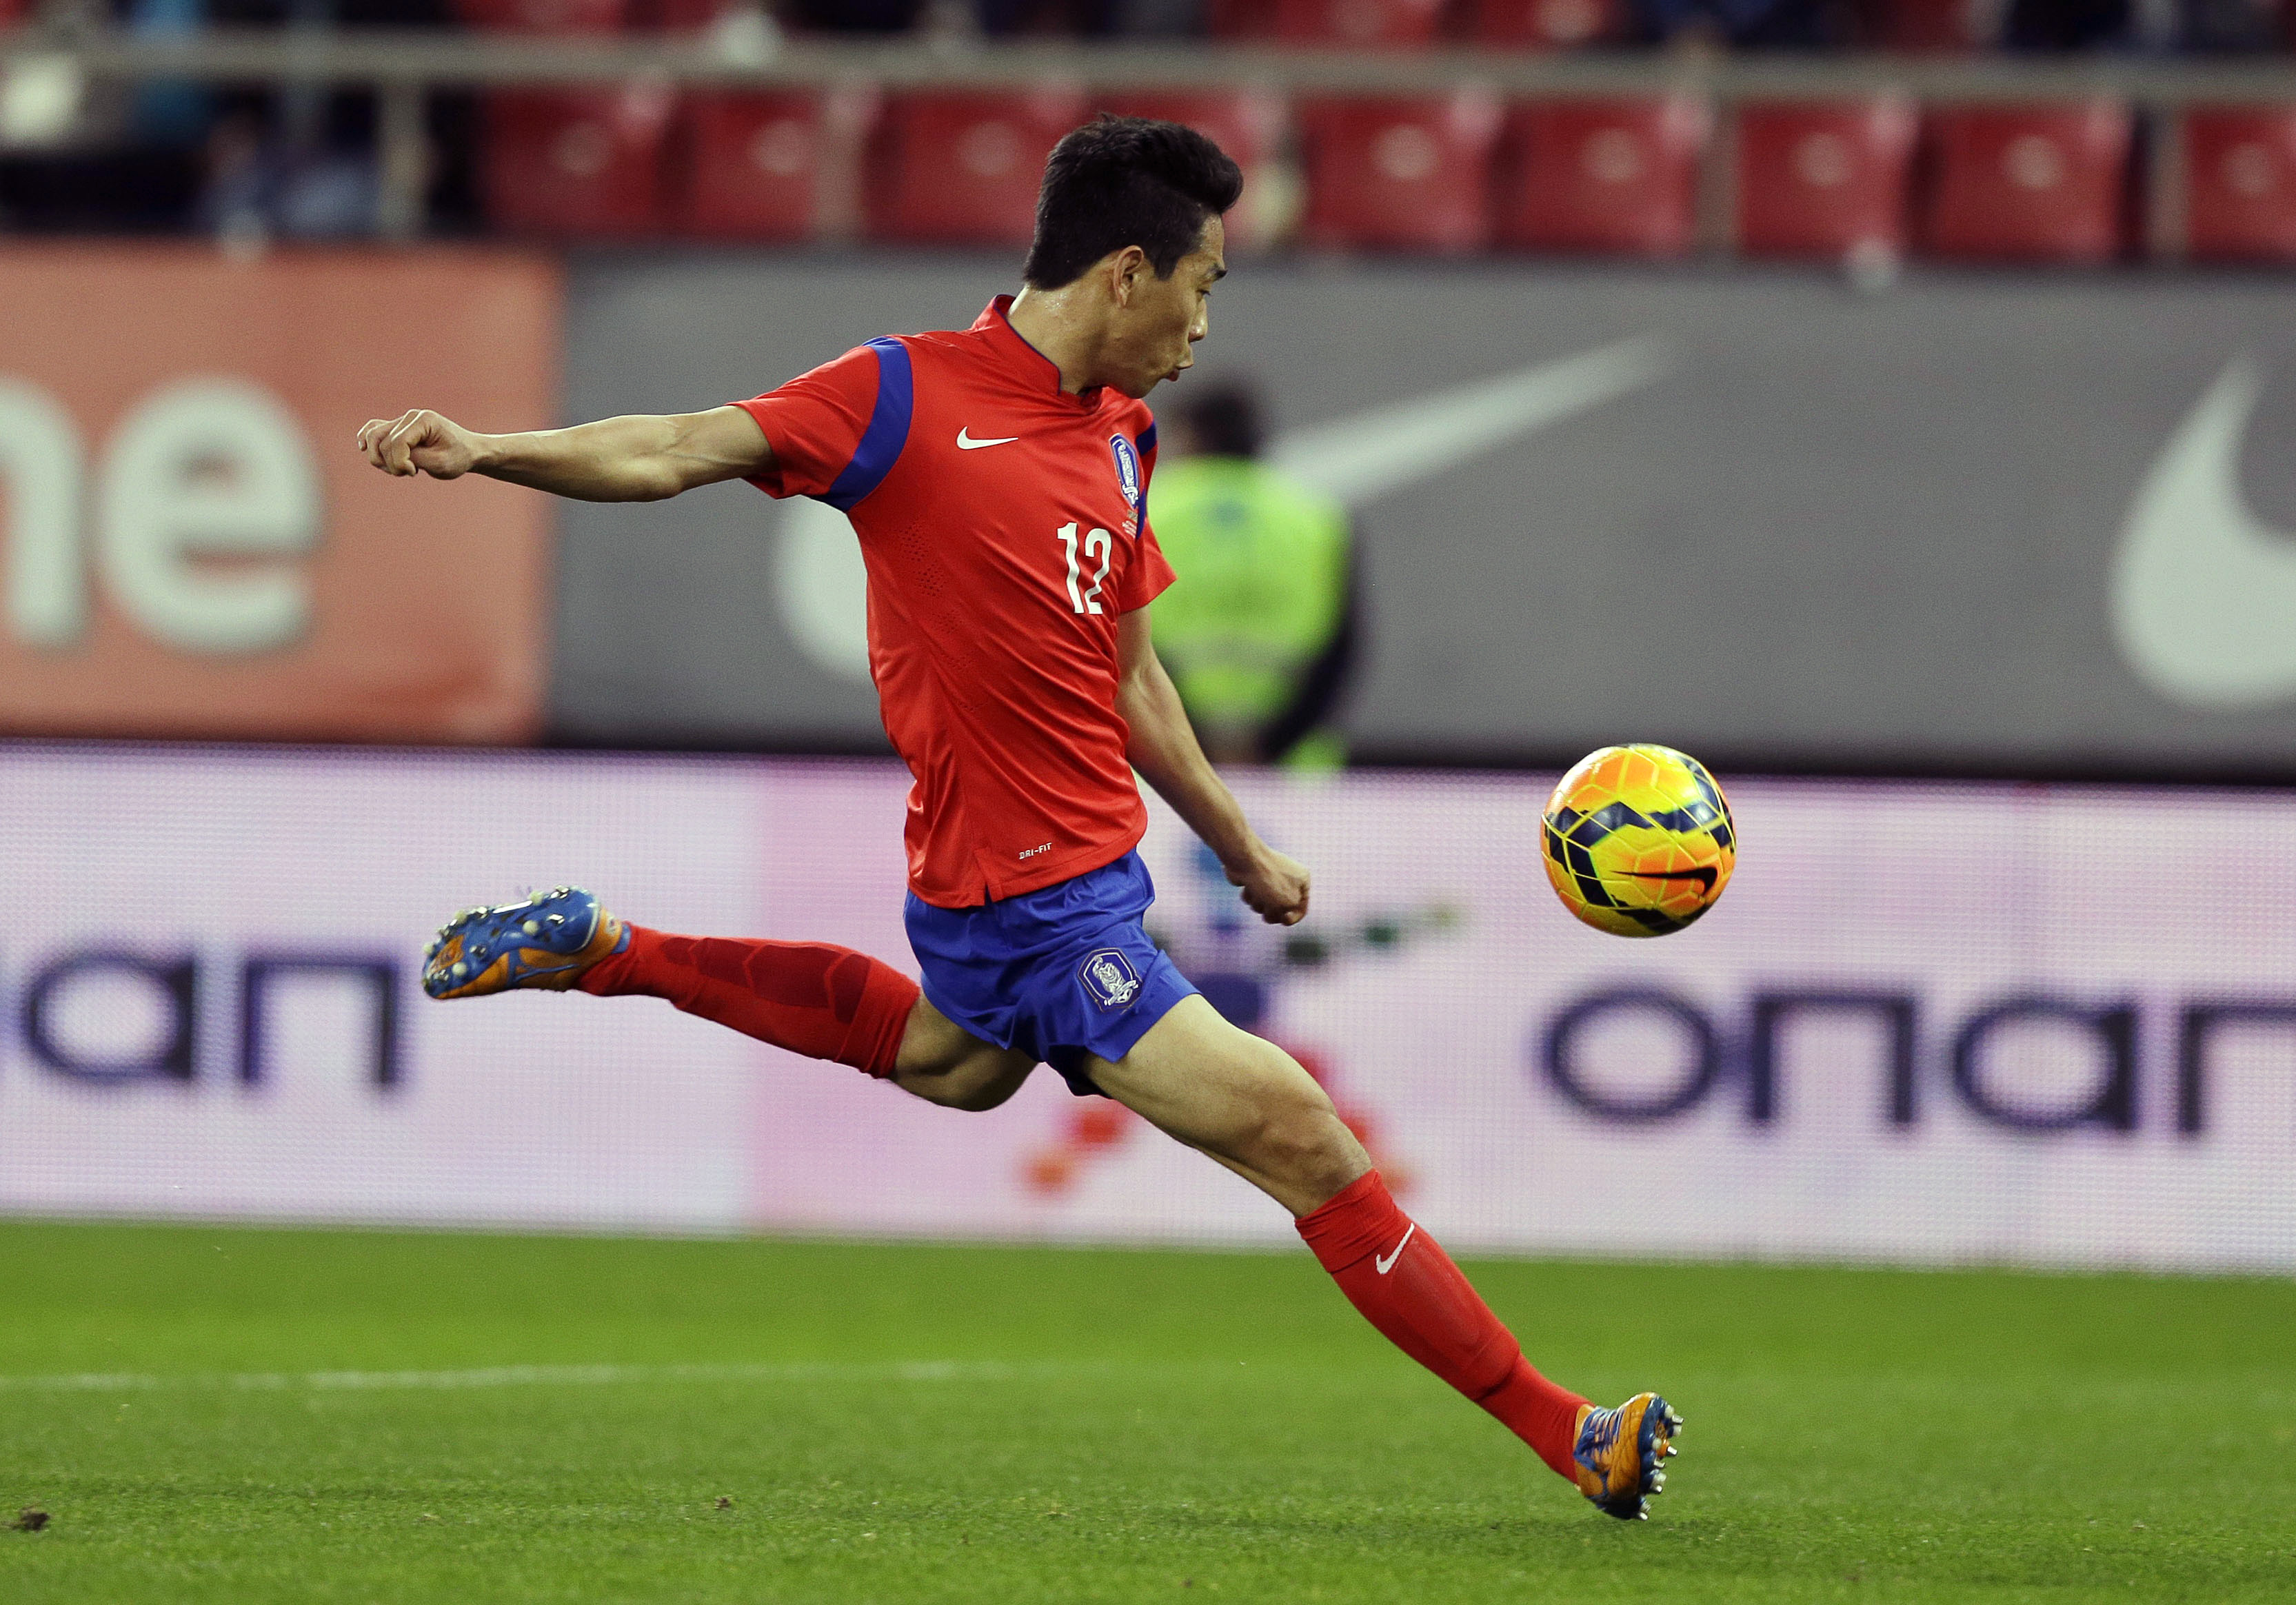 South Korea's Park Chu-young scores the opening goal against Greece during a friendly match at Georgios Karaiskakis stadium in Piraeus port, near Athens, Wednesday, March 5, 2014. (AP Photo/Thanassis Stavrakis)